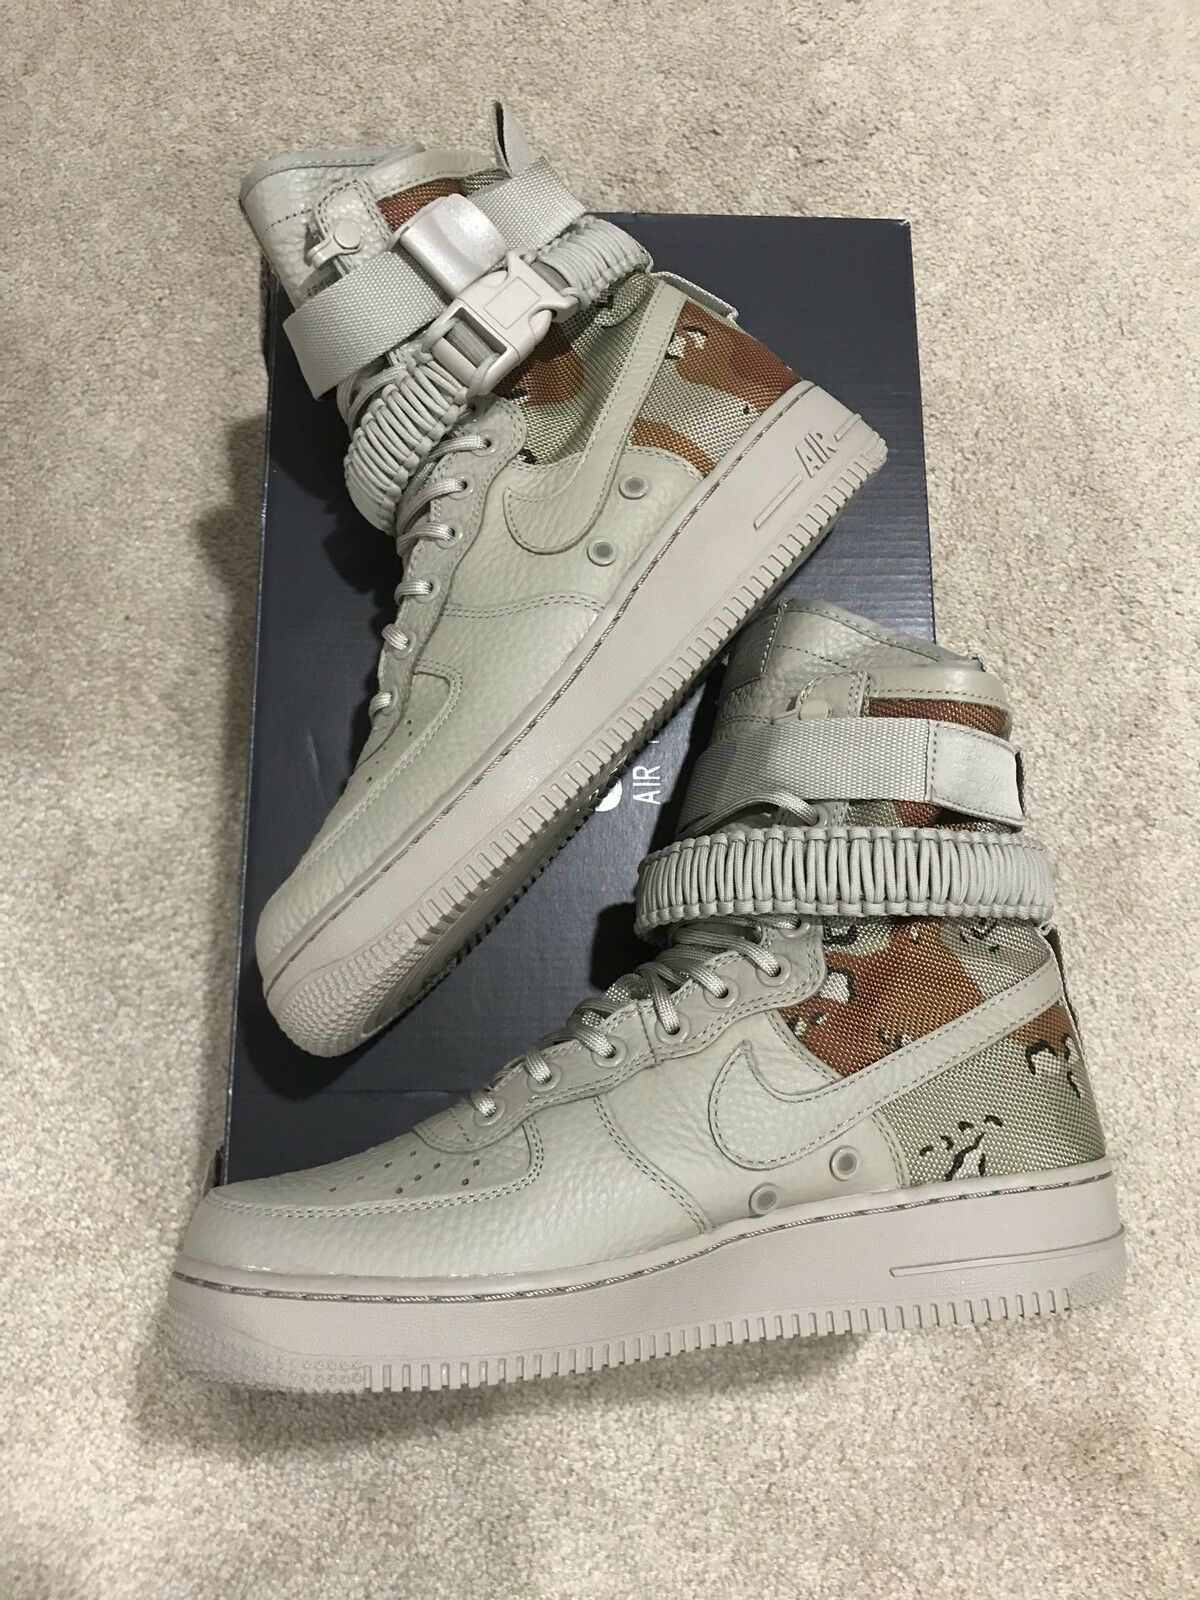 Nike SF AF1 Special Field Air Force 1 One Desert Camo sz 8.5 864024-202 Forces